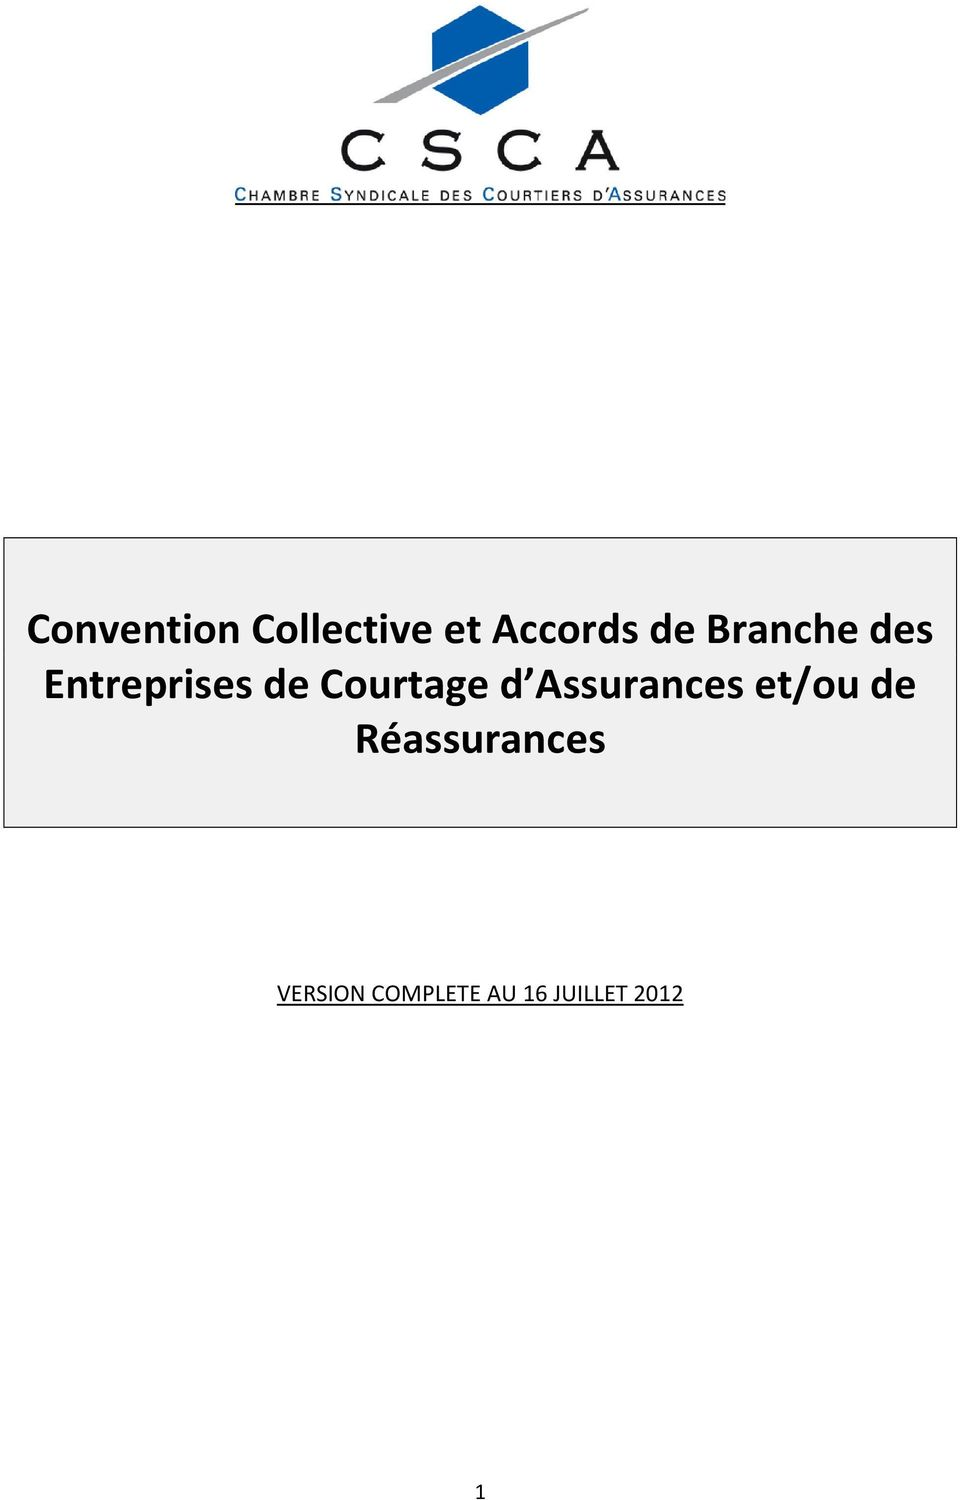 Convention Collective Et Accords De Branche Des Entreprises